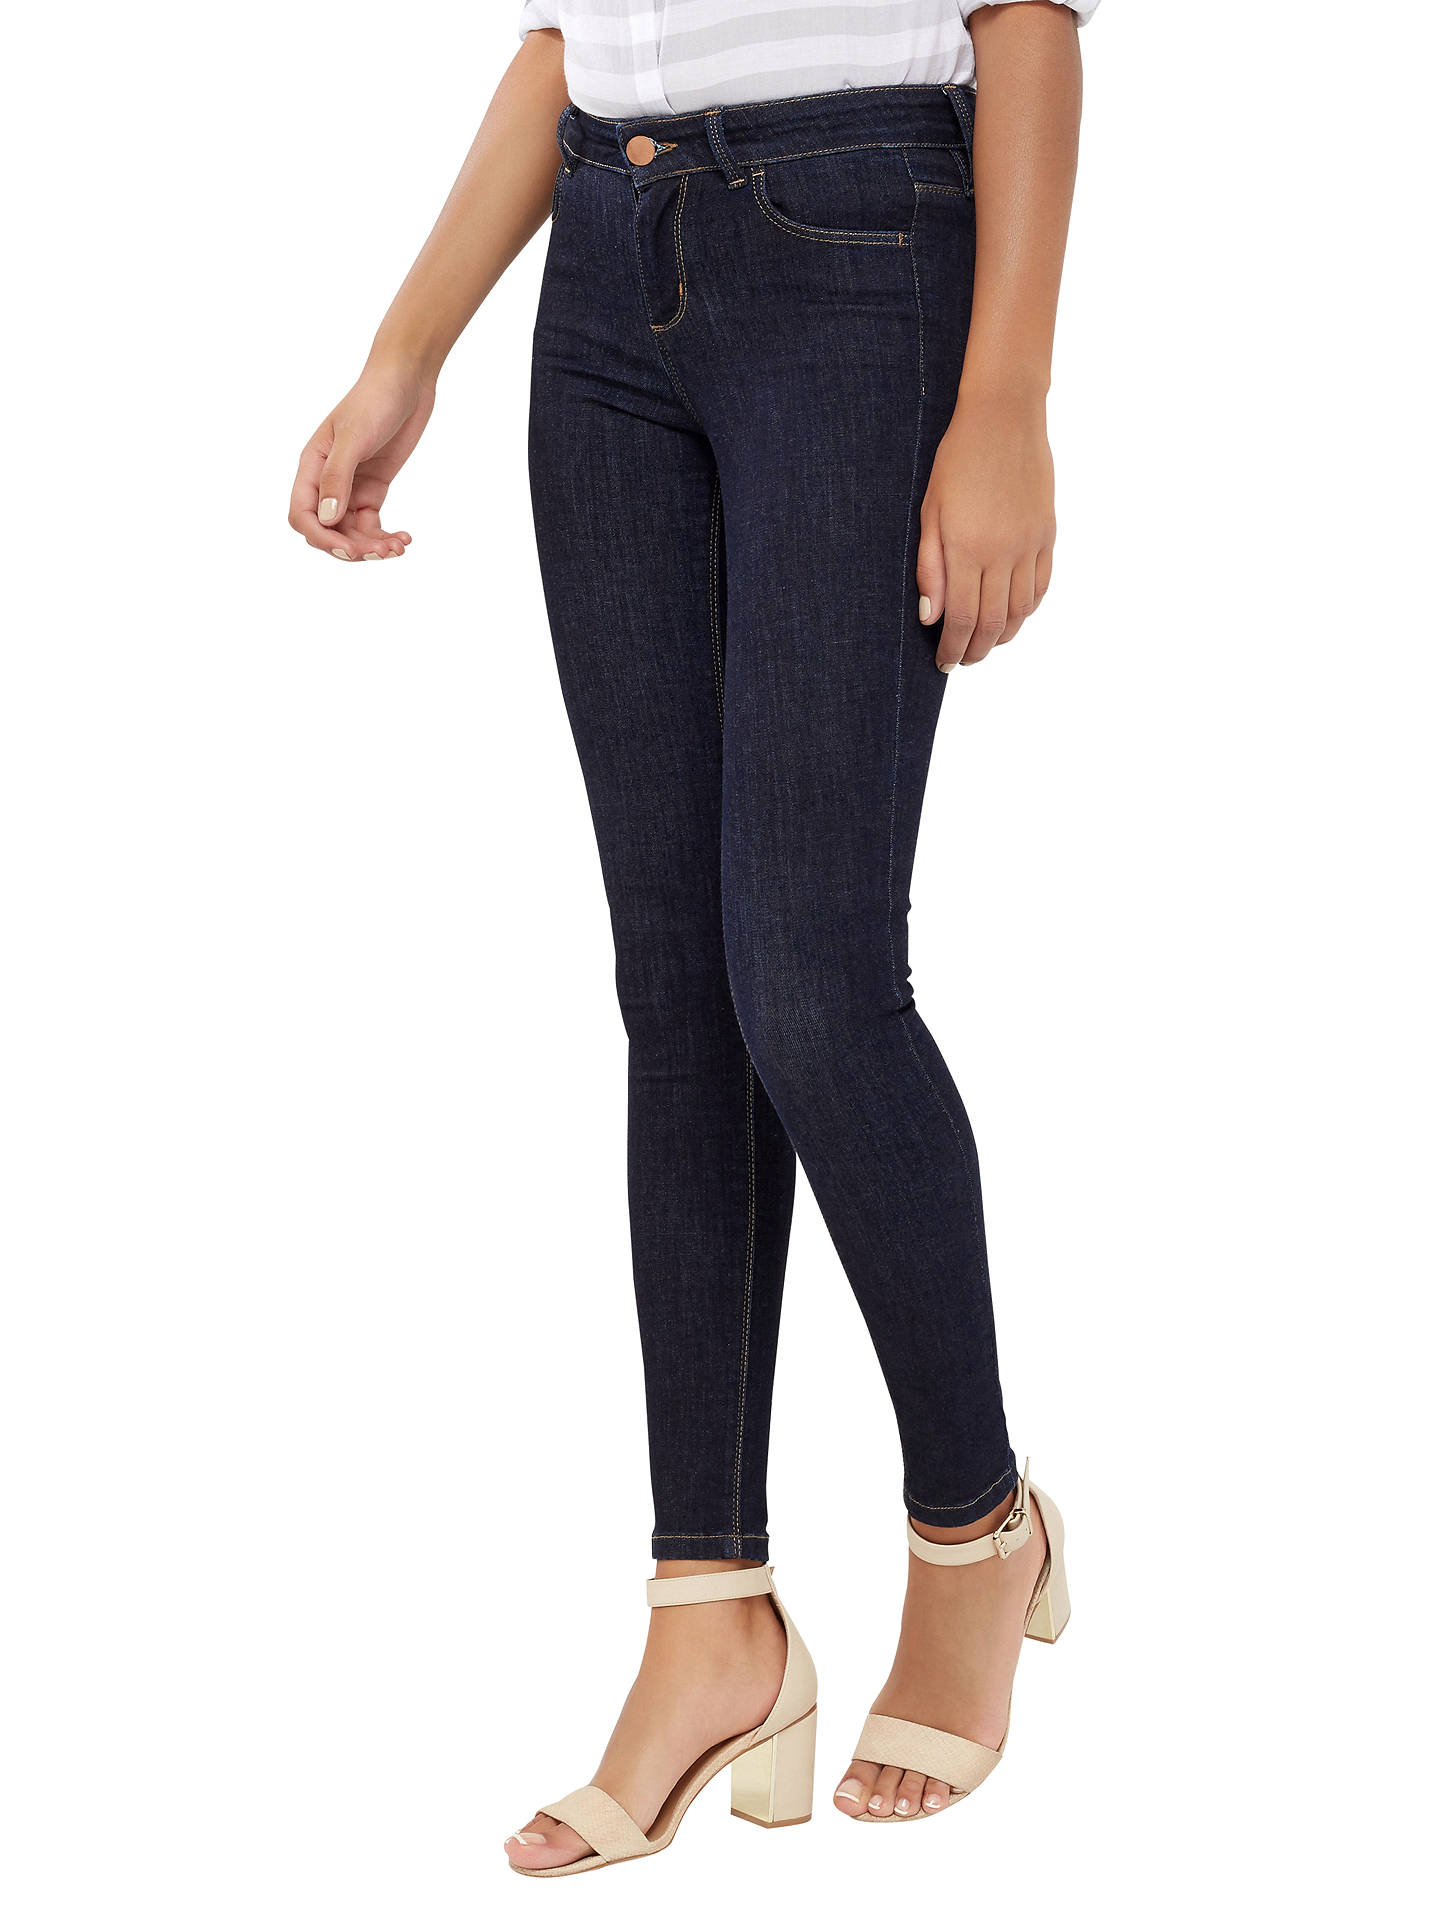 Buy Oasis Jade Classic Skinny Jeans, Dark Wash, 8 Online at johnlewis.com